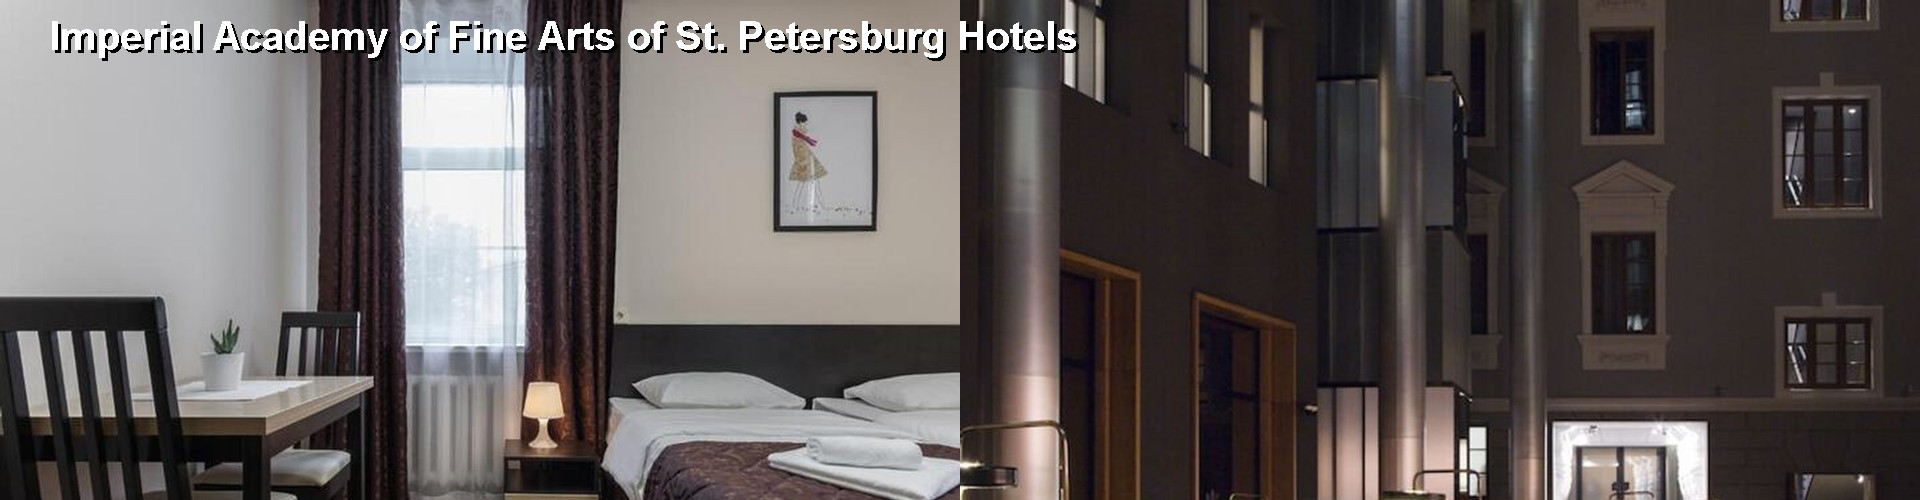 5 Best Hotels near Imperial Academy of Fine Arts of St. Petersburg